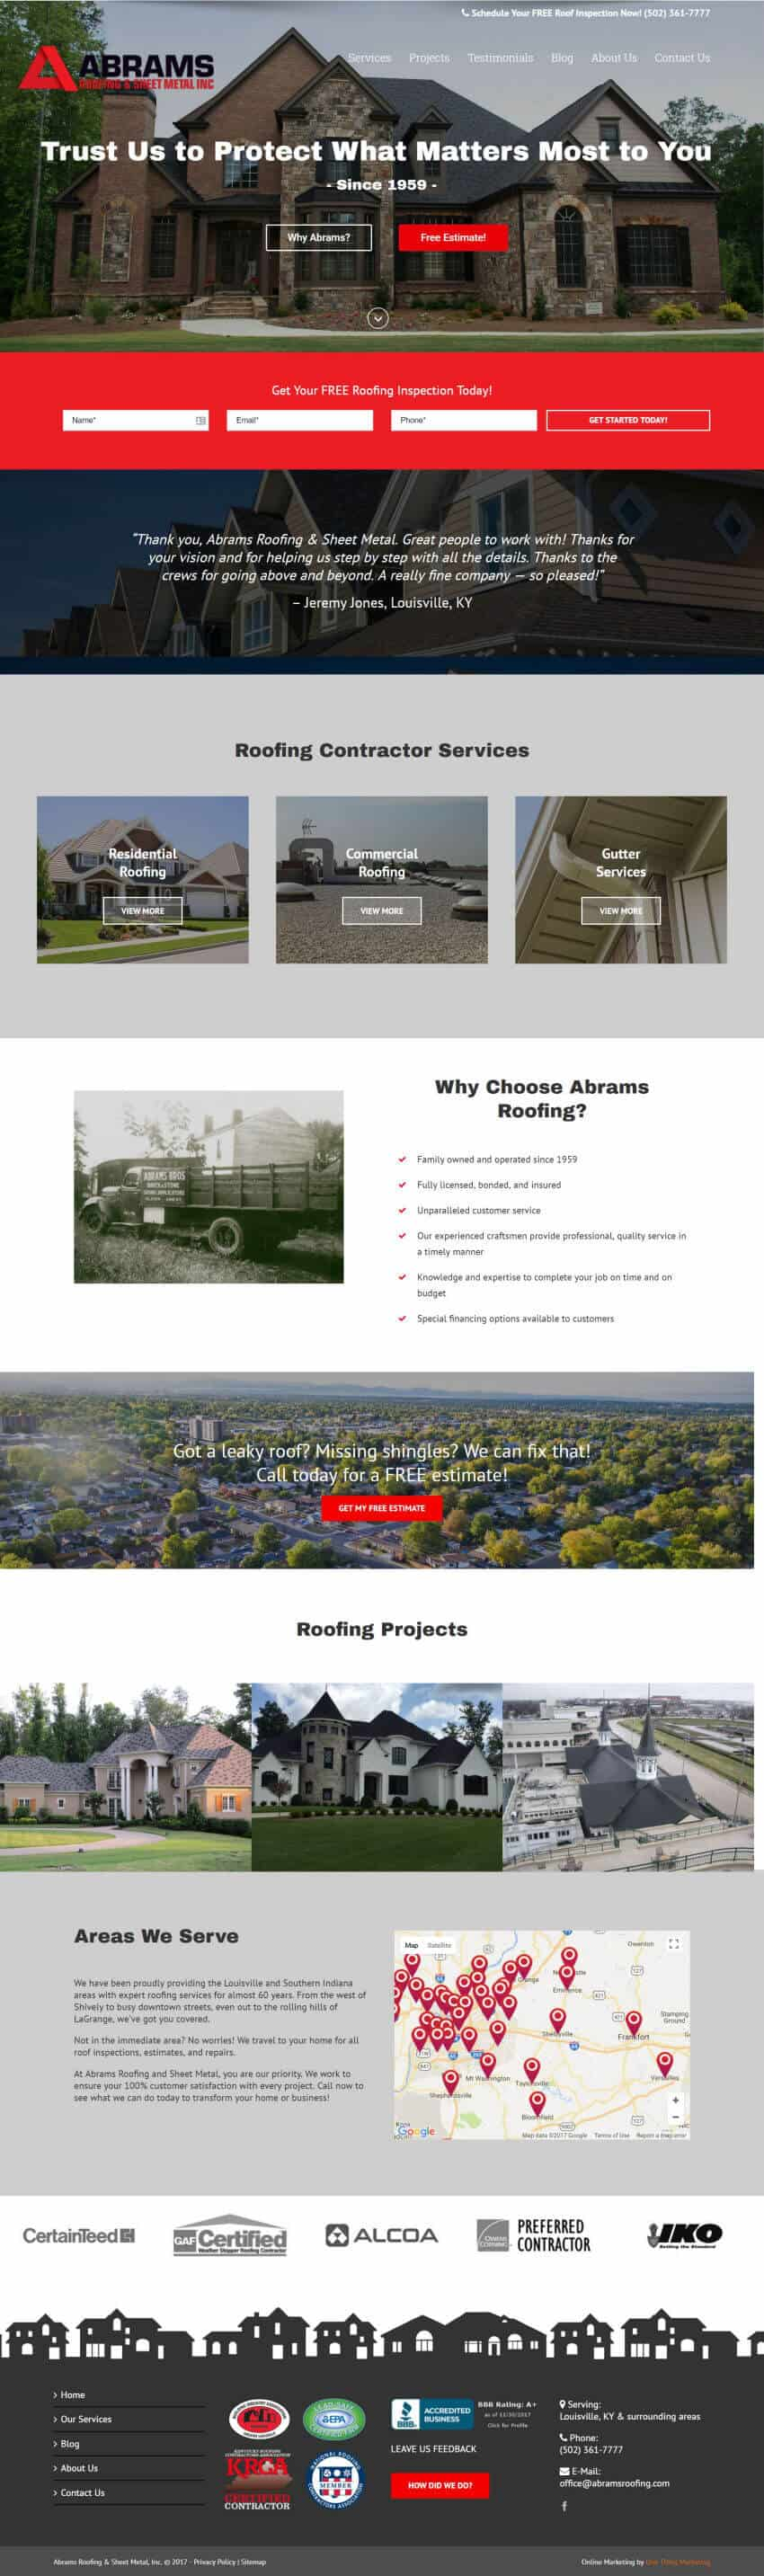 Abrams Roofing Homepage - After